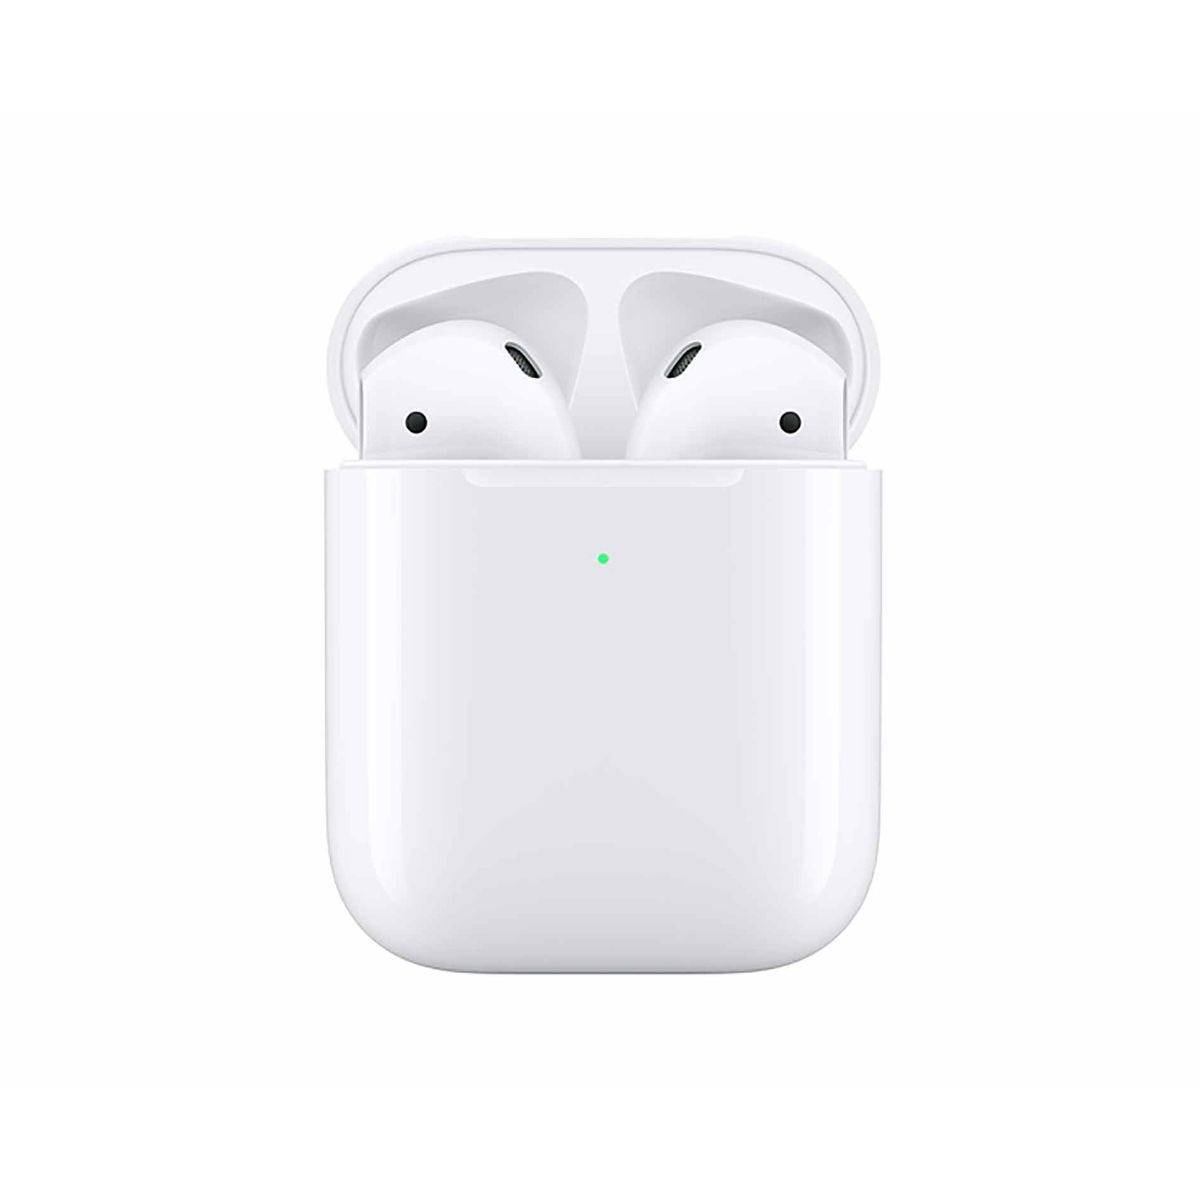 Apple AirPods with Wireless Charging Case Gen 2, White